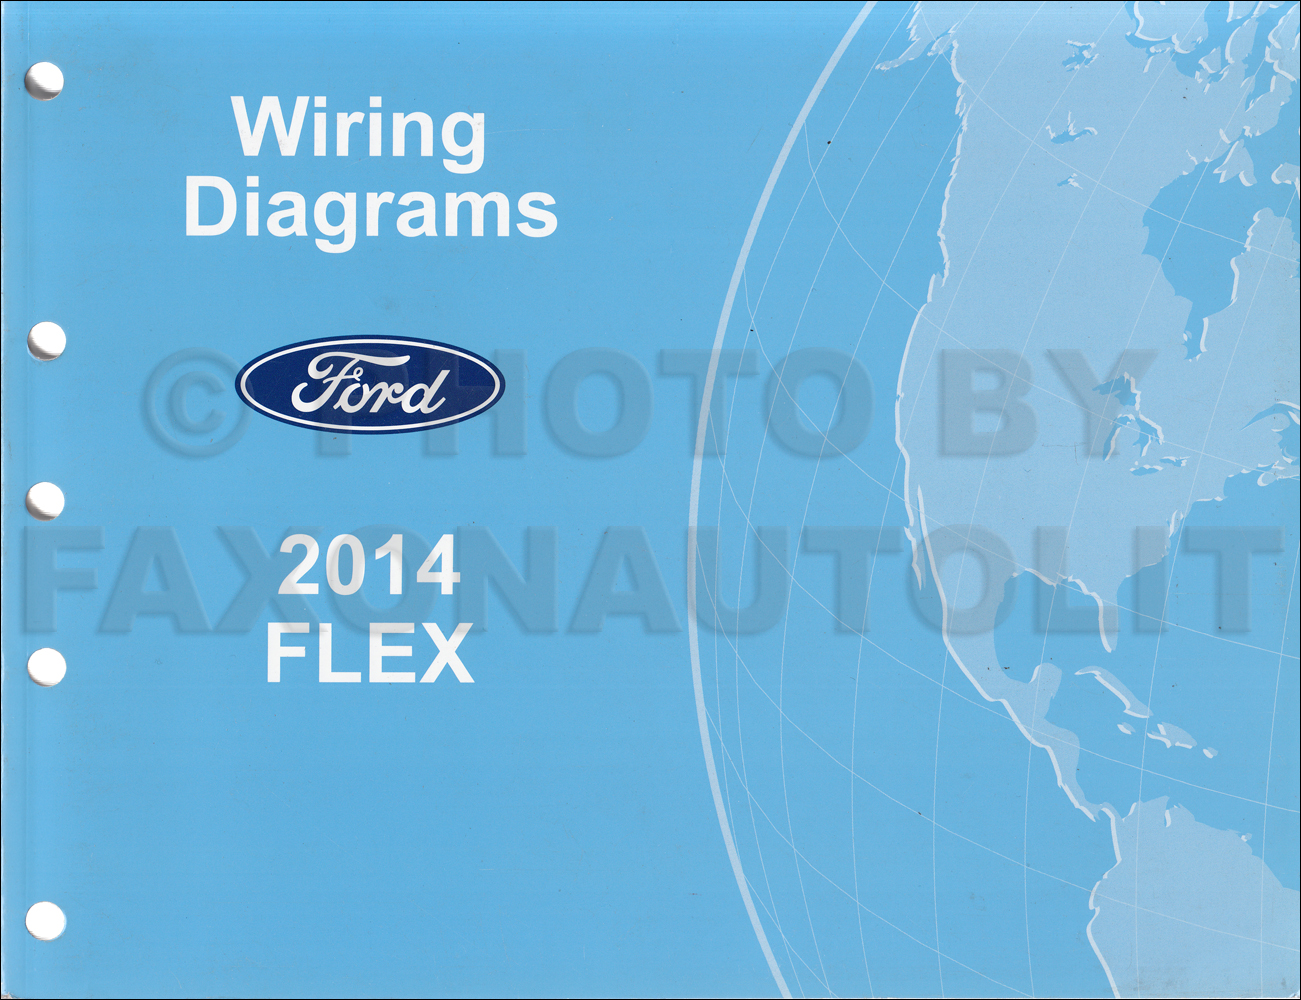 2014 Flex Wiring Diagram - House Wiring Diagram Symbols •